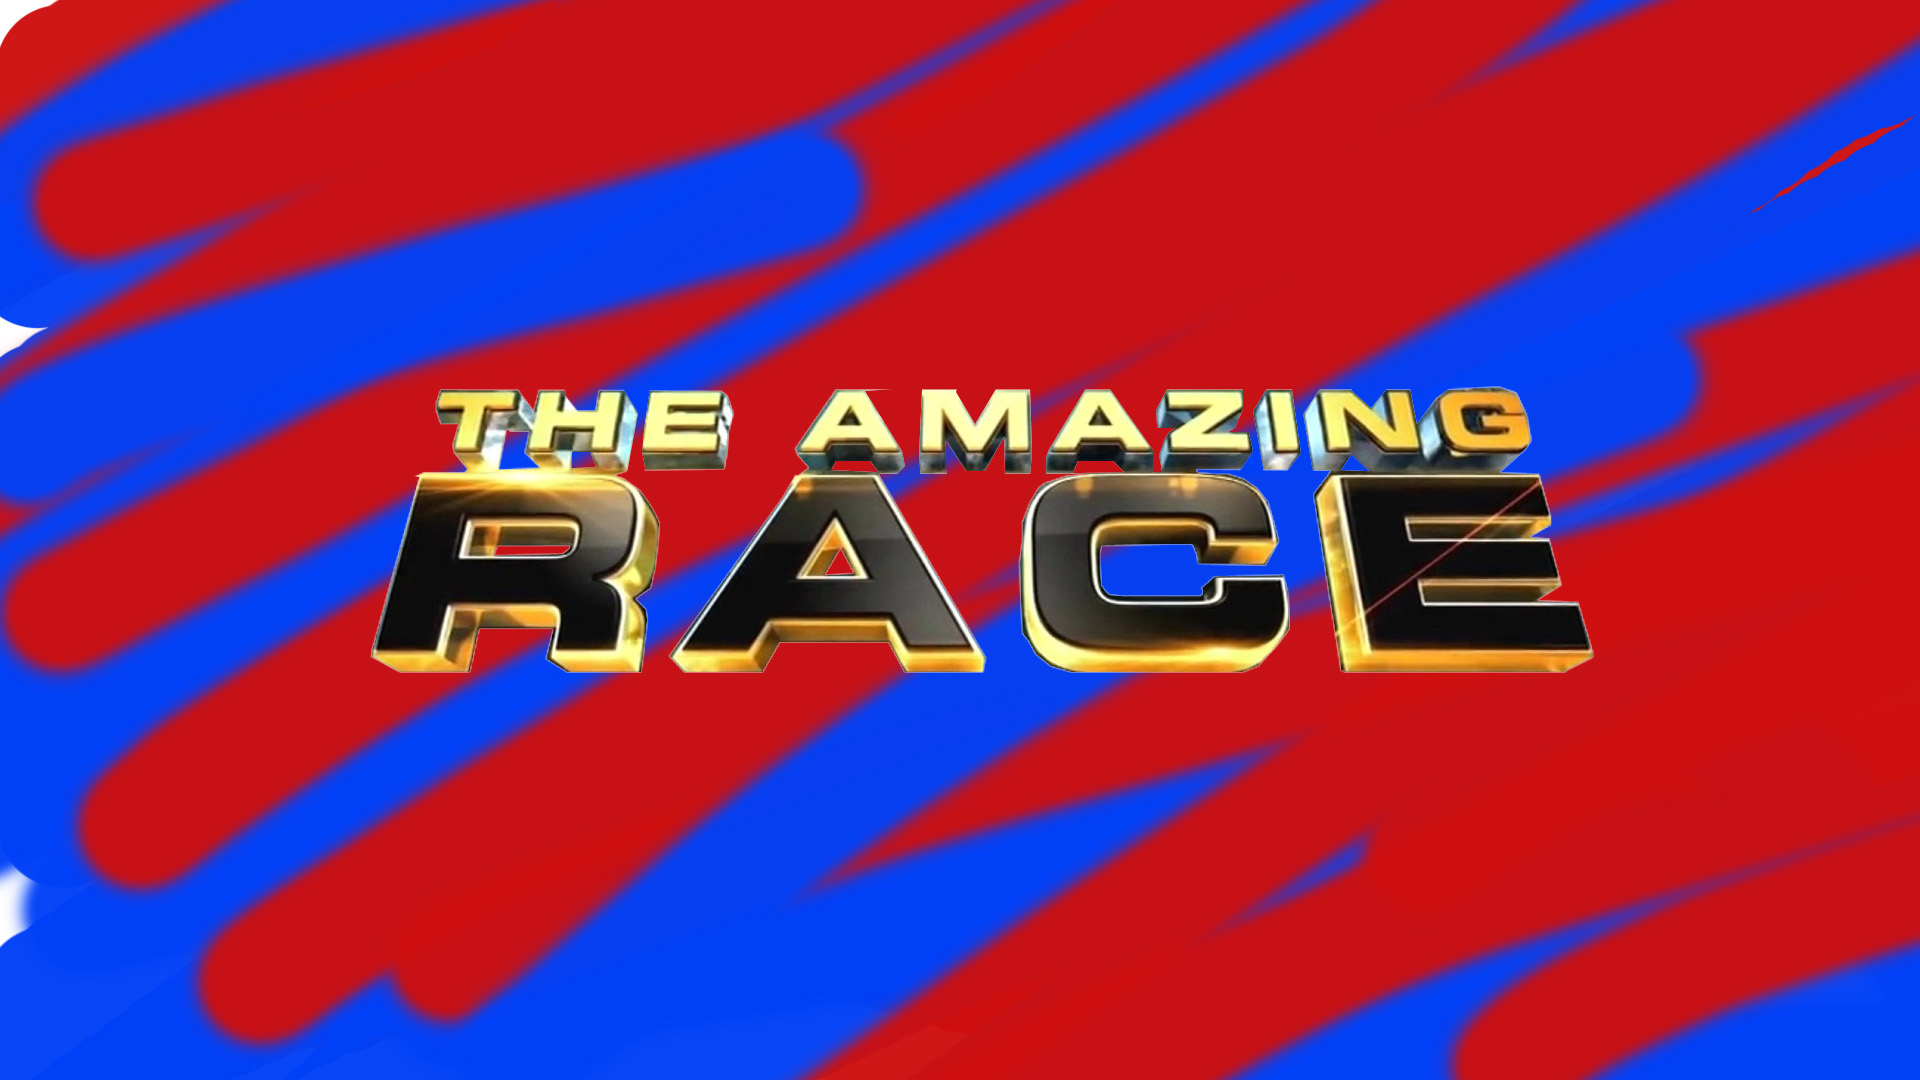 Commentary: Polarizing Politics and <I>The Amazing Race</i>